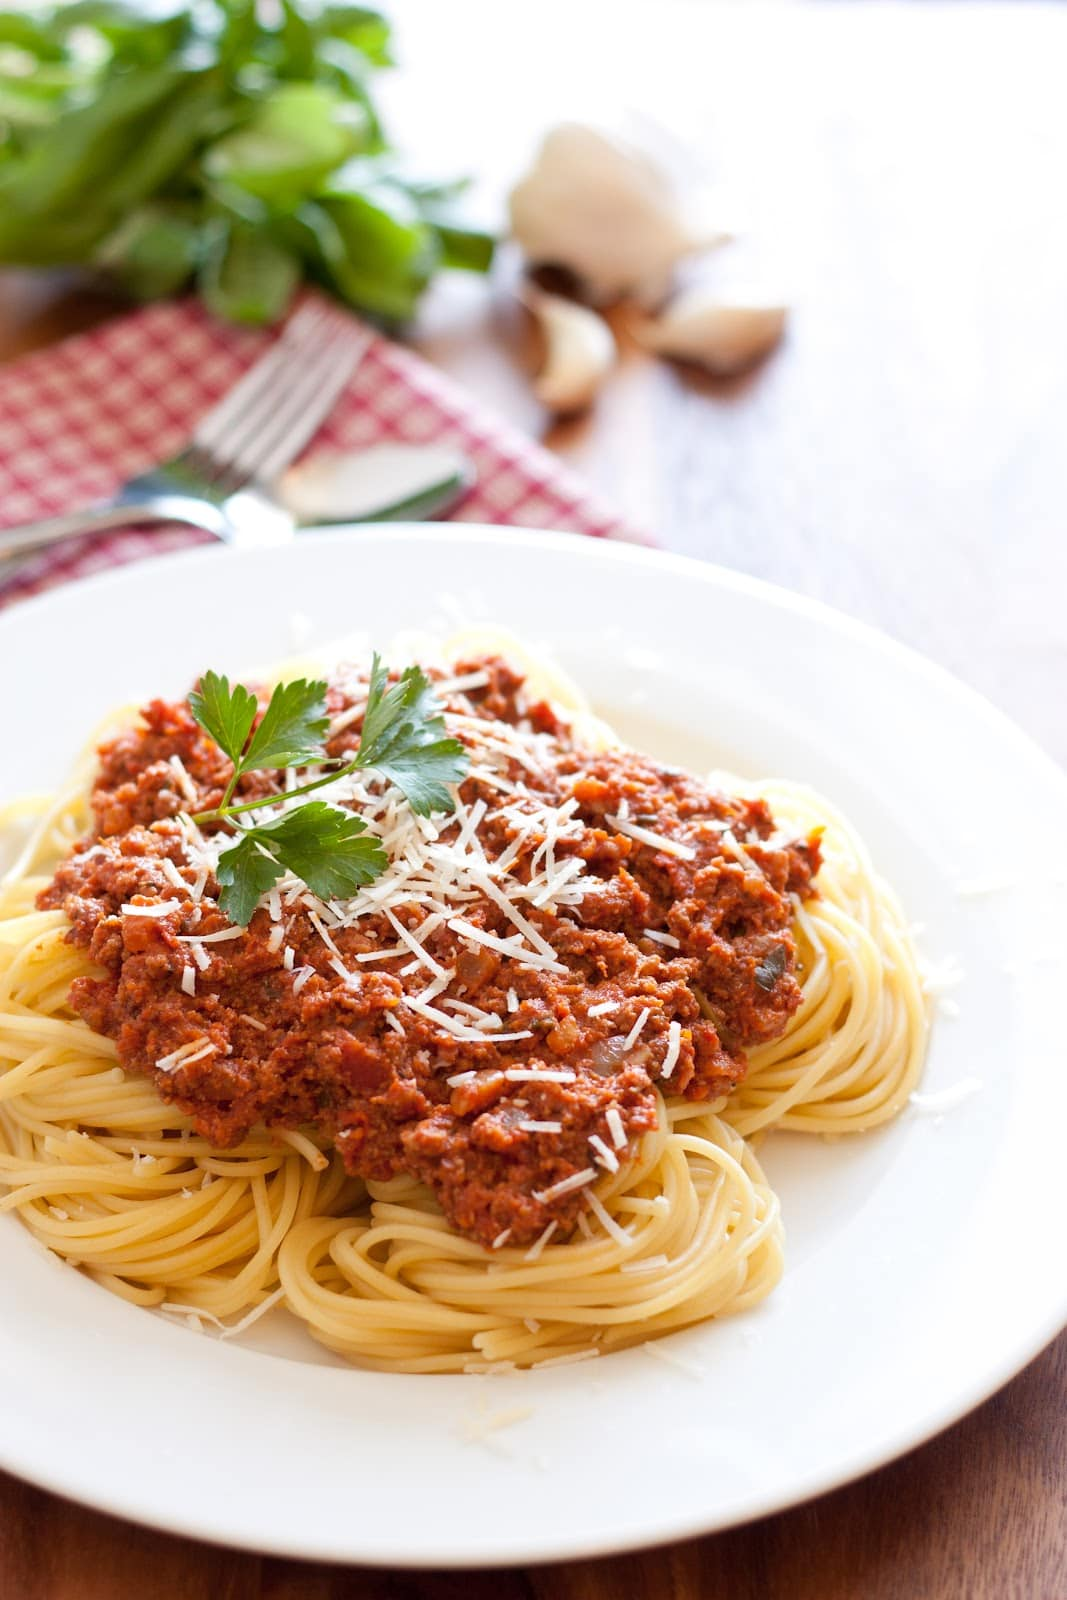 Spaghetti With Meat Sauce Authentic Italian Style Watermelon Wallpaper Rainbow Find Free HD for Desktop [freshlhys.tk]